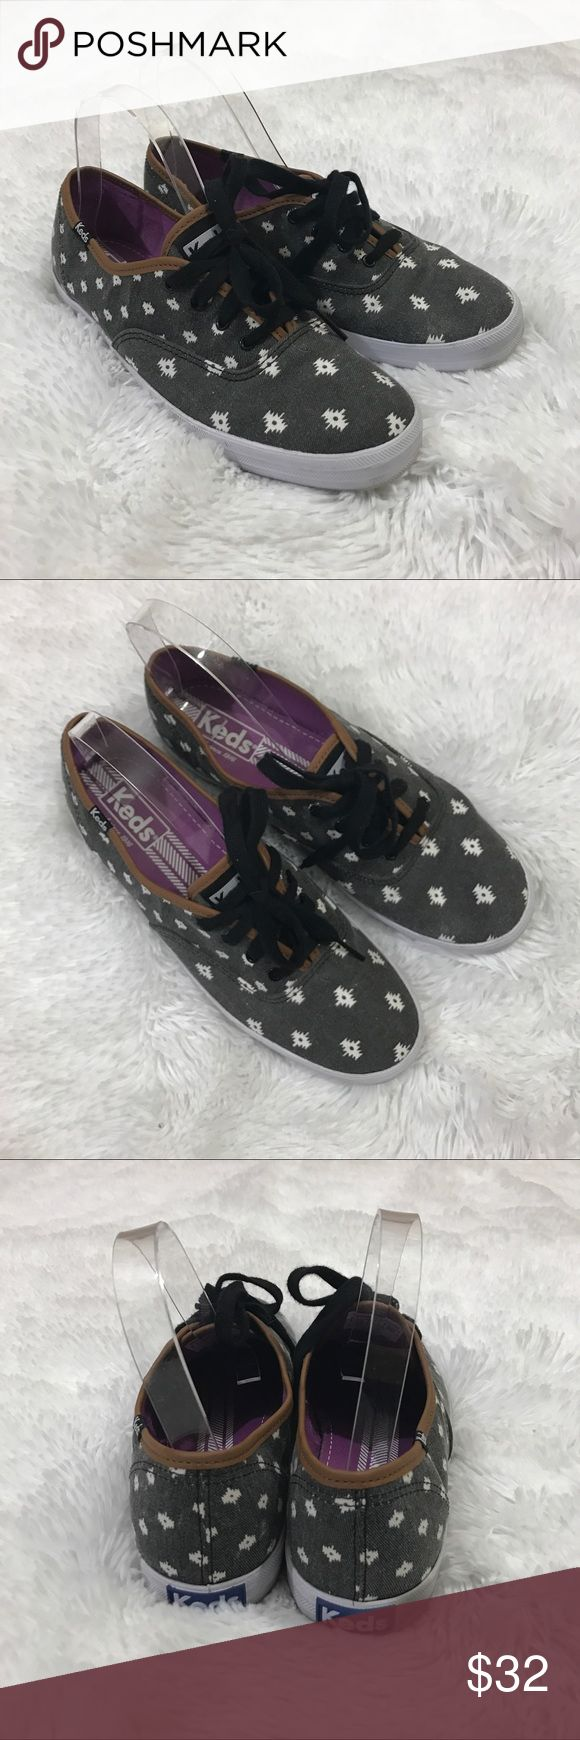 Keds blk/wht Aztec print Sz 8 women's GUC These super cute Keds women's sneakers are a size 8 and are a washed black (slightly intentionally faded look) with a fun white Aztec/Tribal pattern. They are in good preowned condition with no damage and light overall wear. Keds Shoes Sneakers